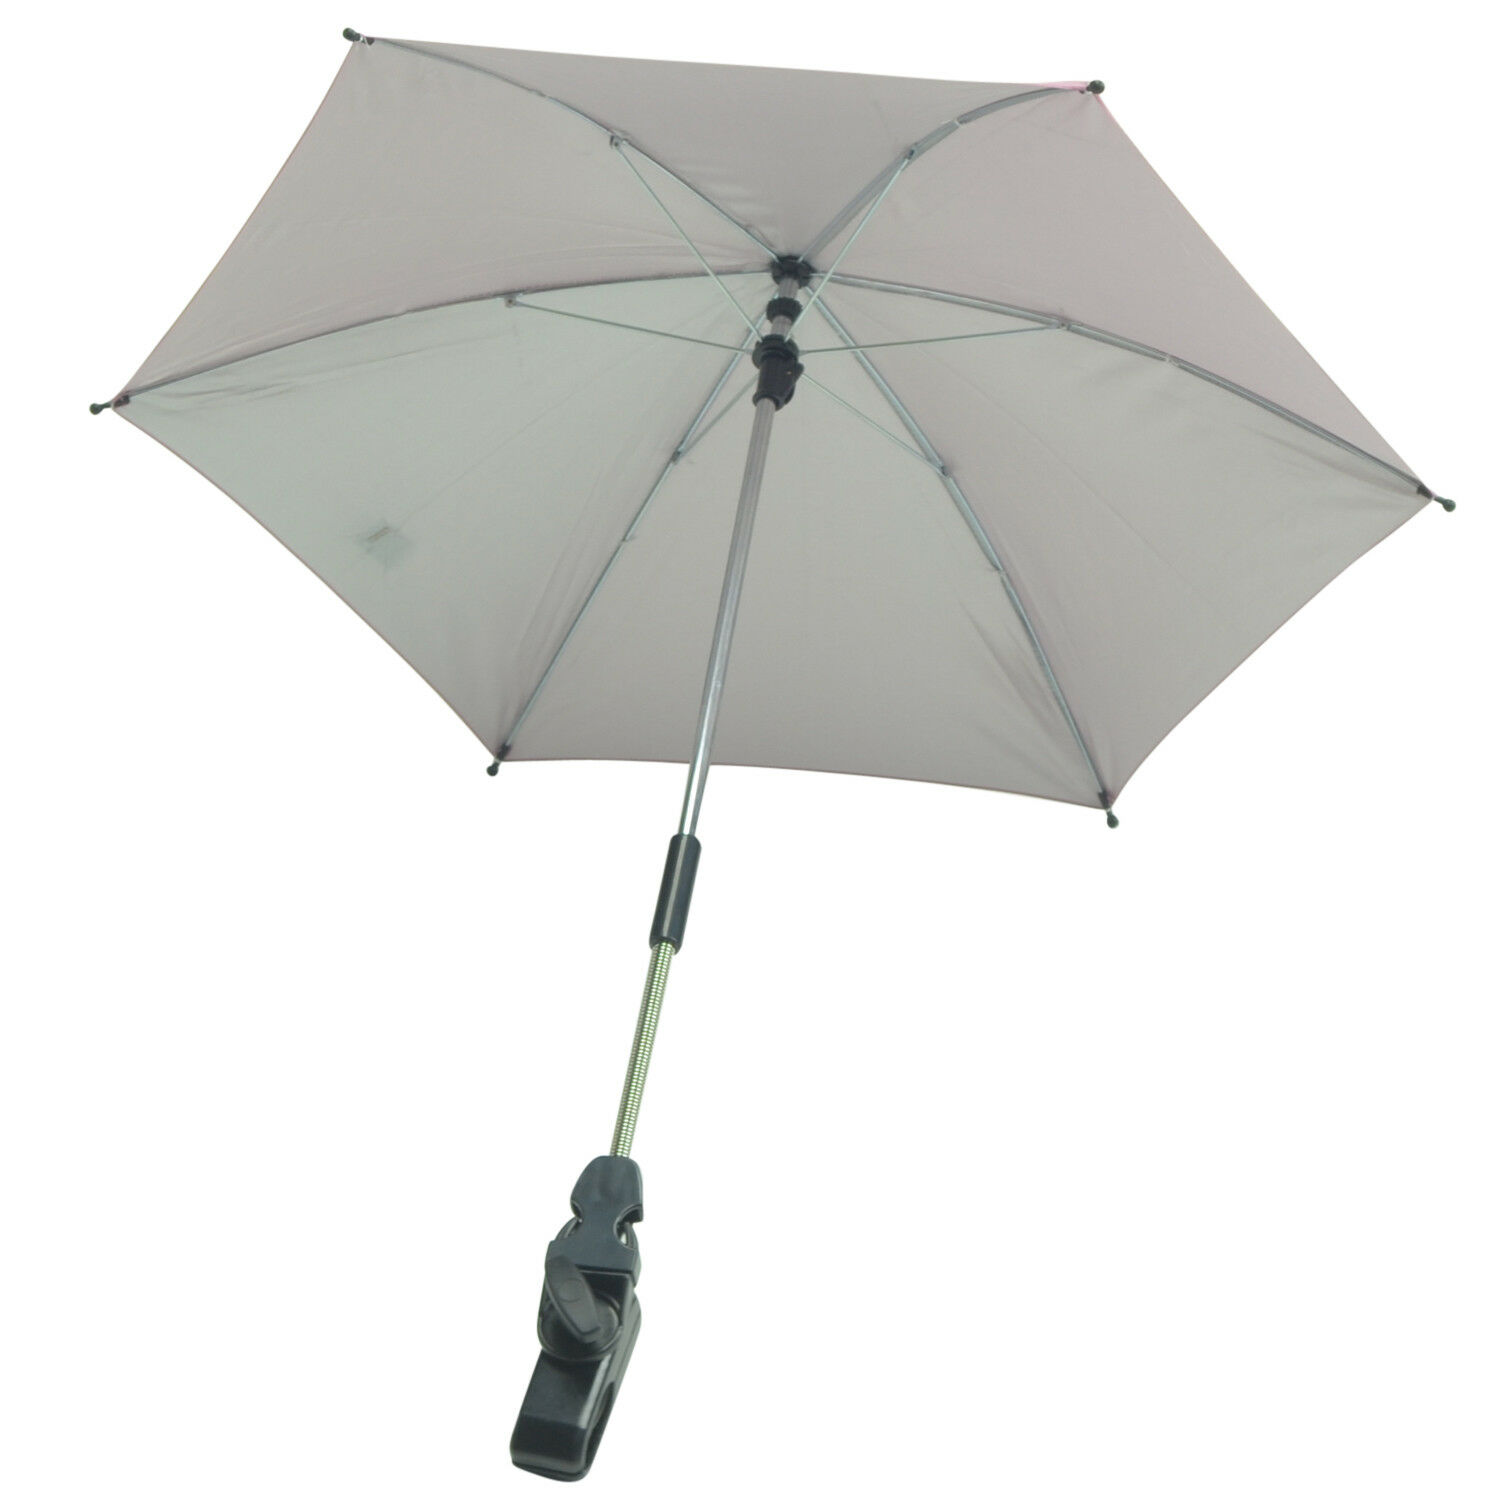 Baby-Parasol-Compatible-With-iCandy thumbnail 55